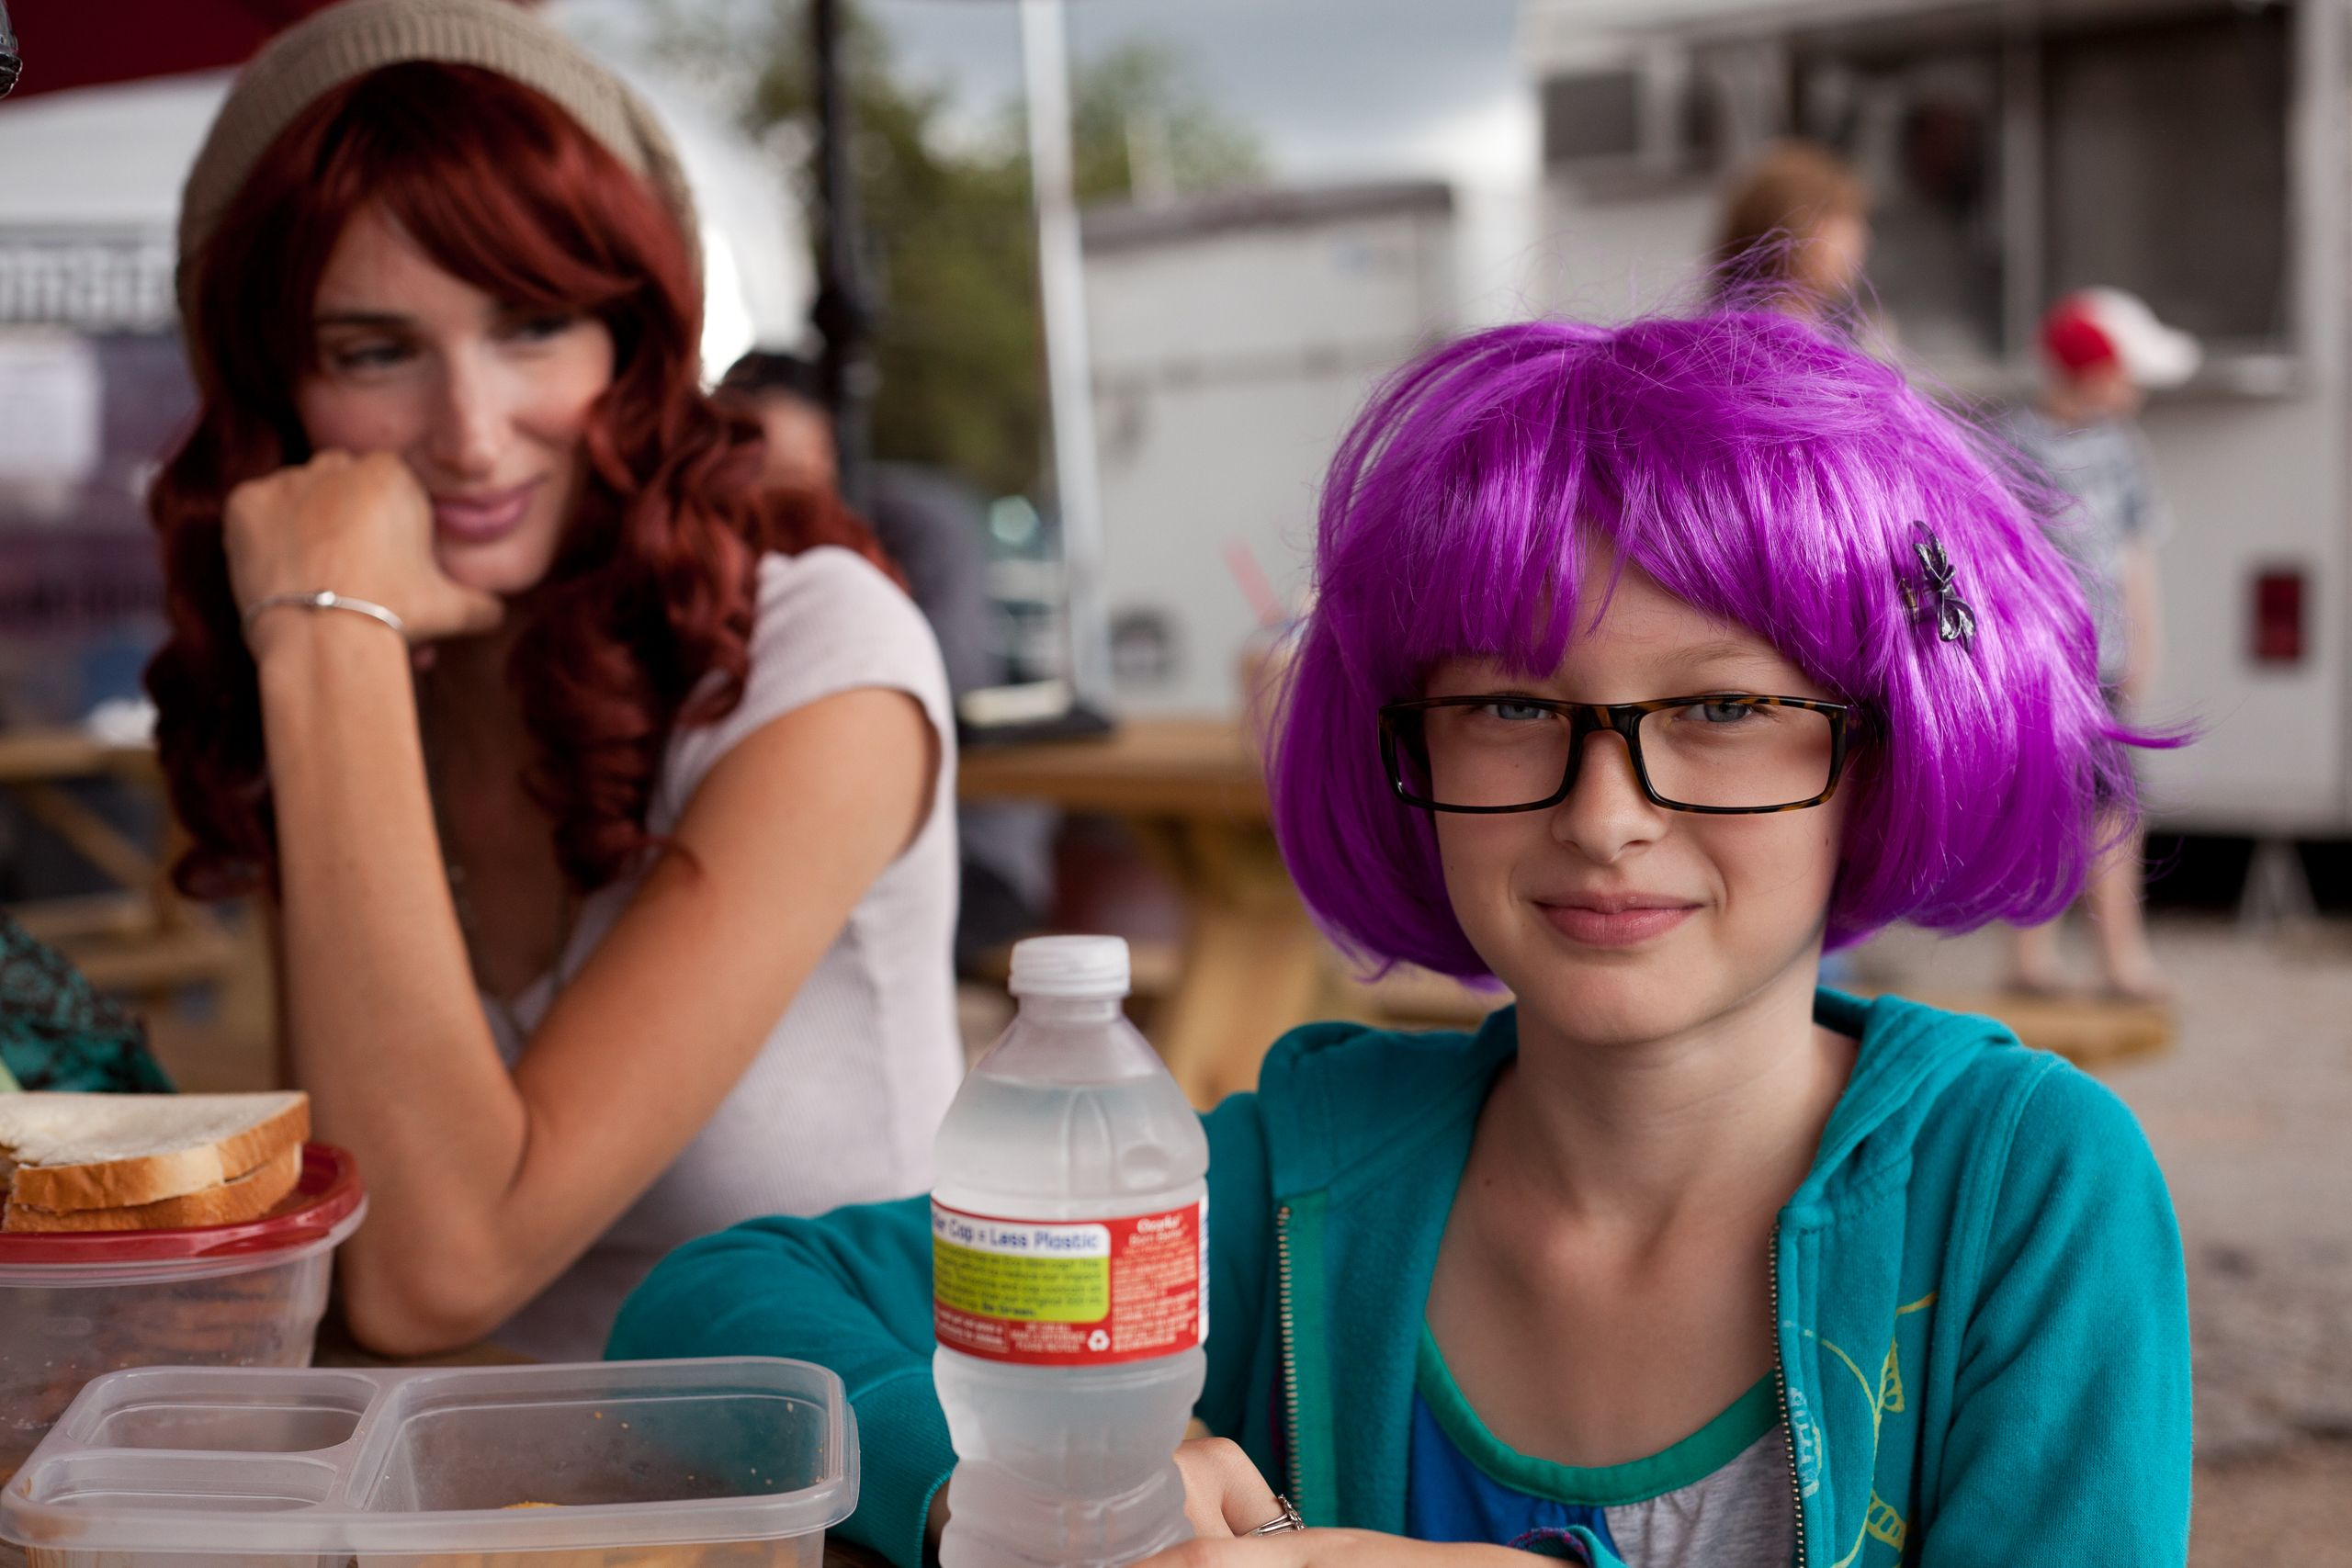 Girl With Purple Wig and Glasses